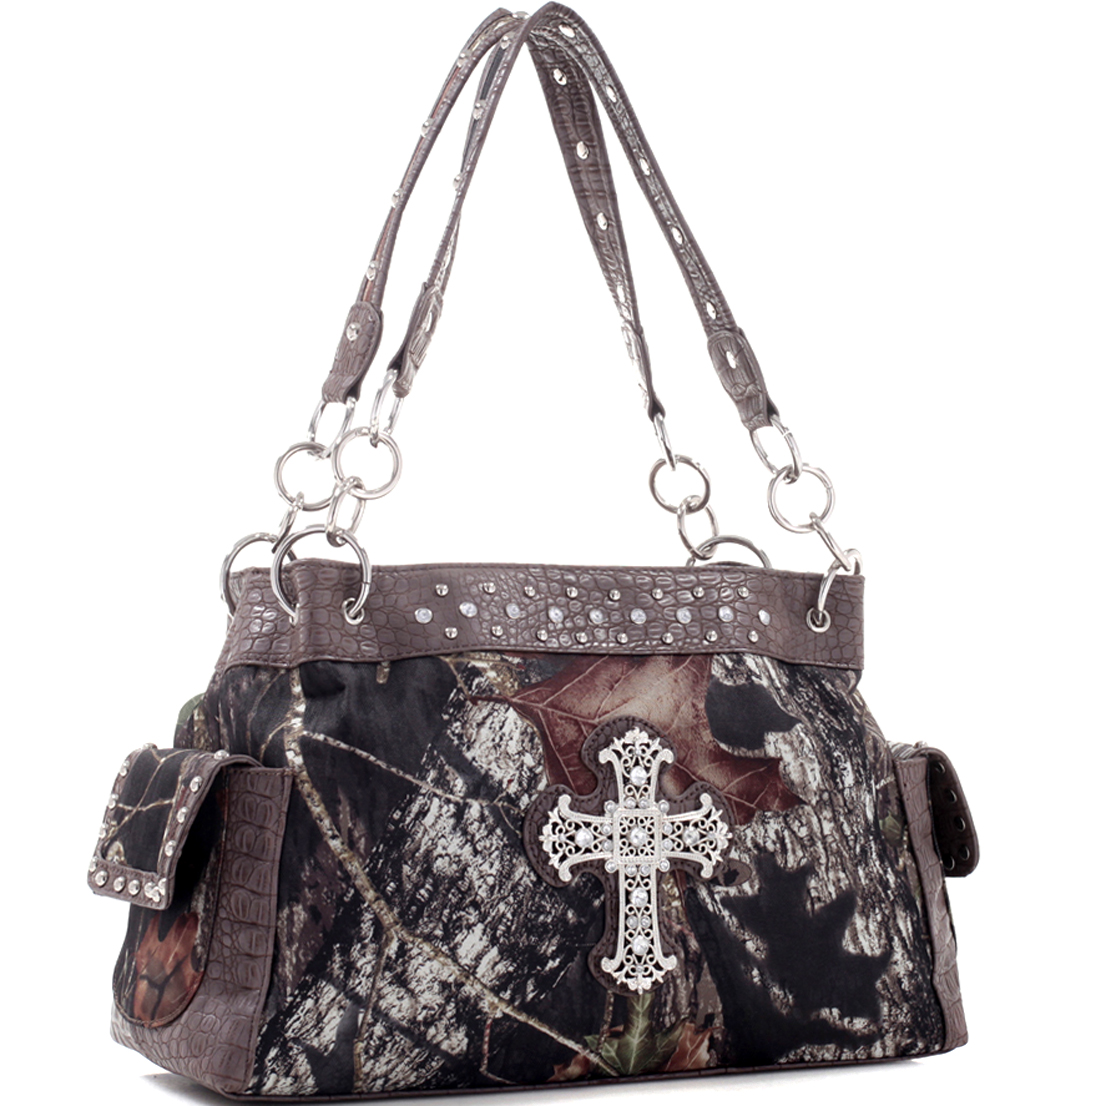 Mossy Oak® Camouflage Rhinestone Studded Cross Shoulder Bag